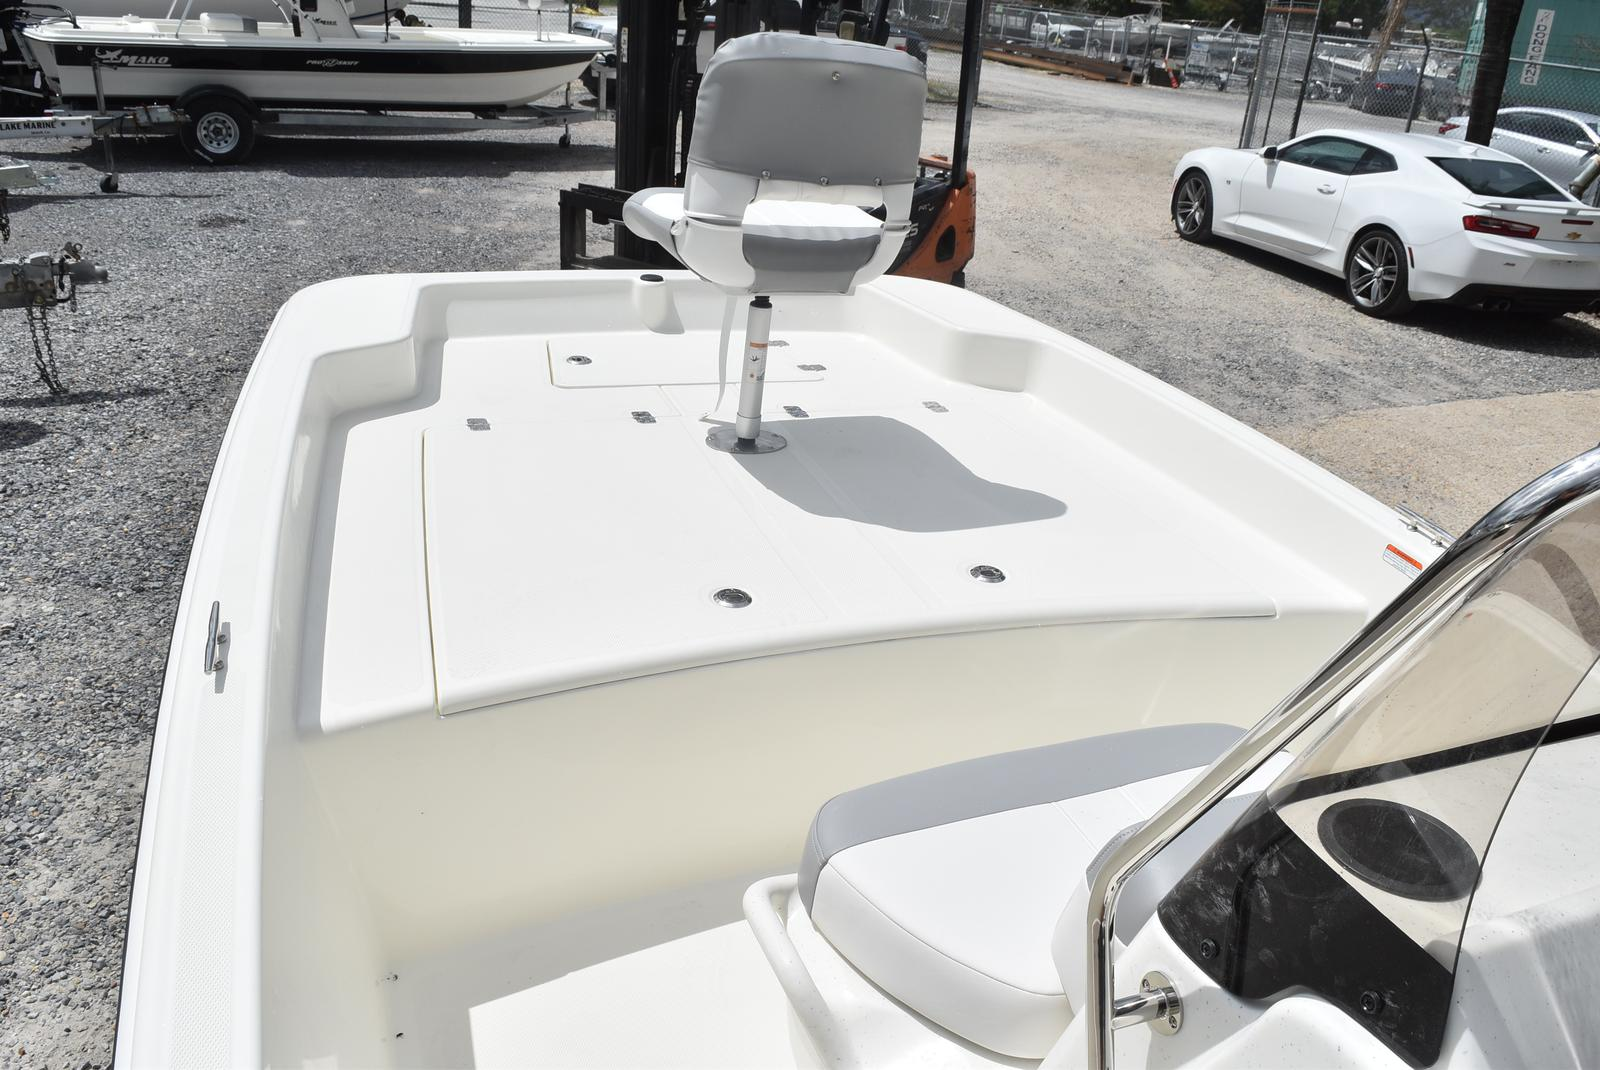 2020 Mako boat for sale, model of the boat is Pro Skiff 17, 75 ELPT & Image # 441 of 702